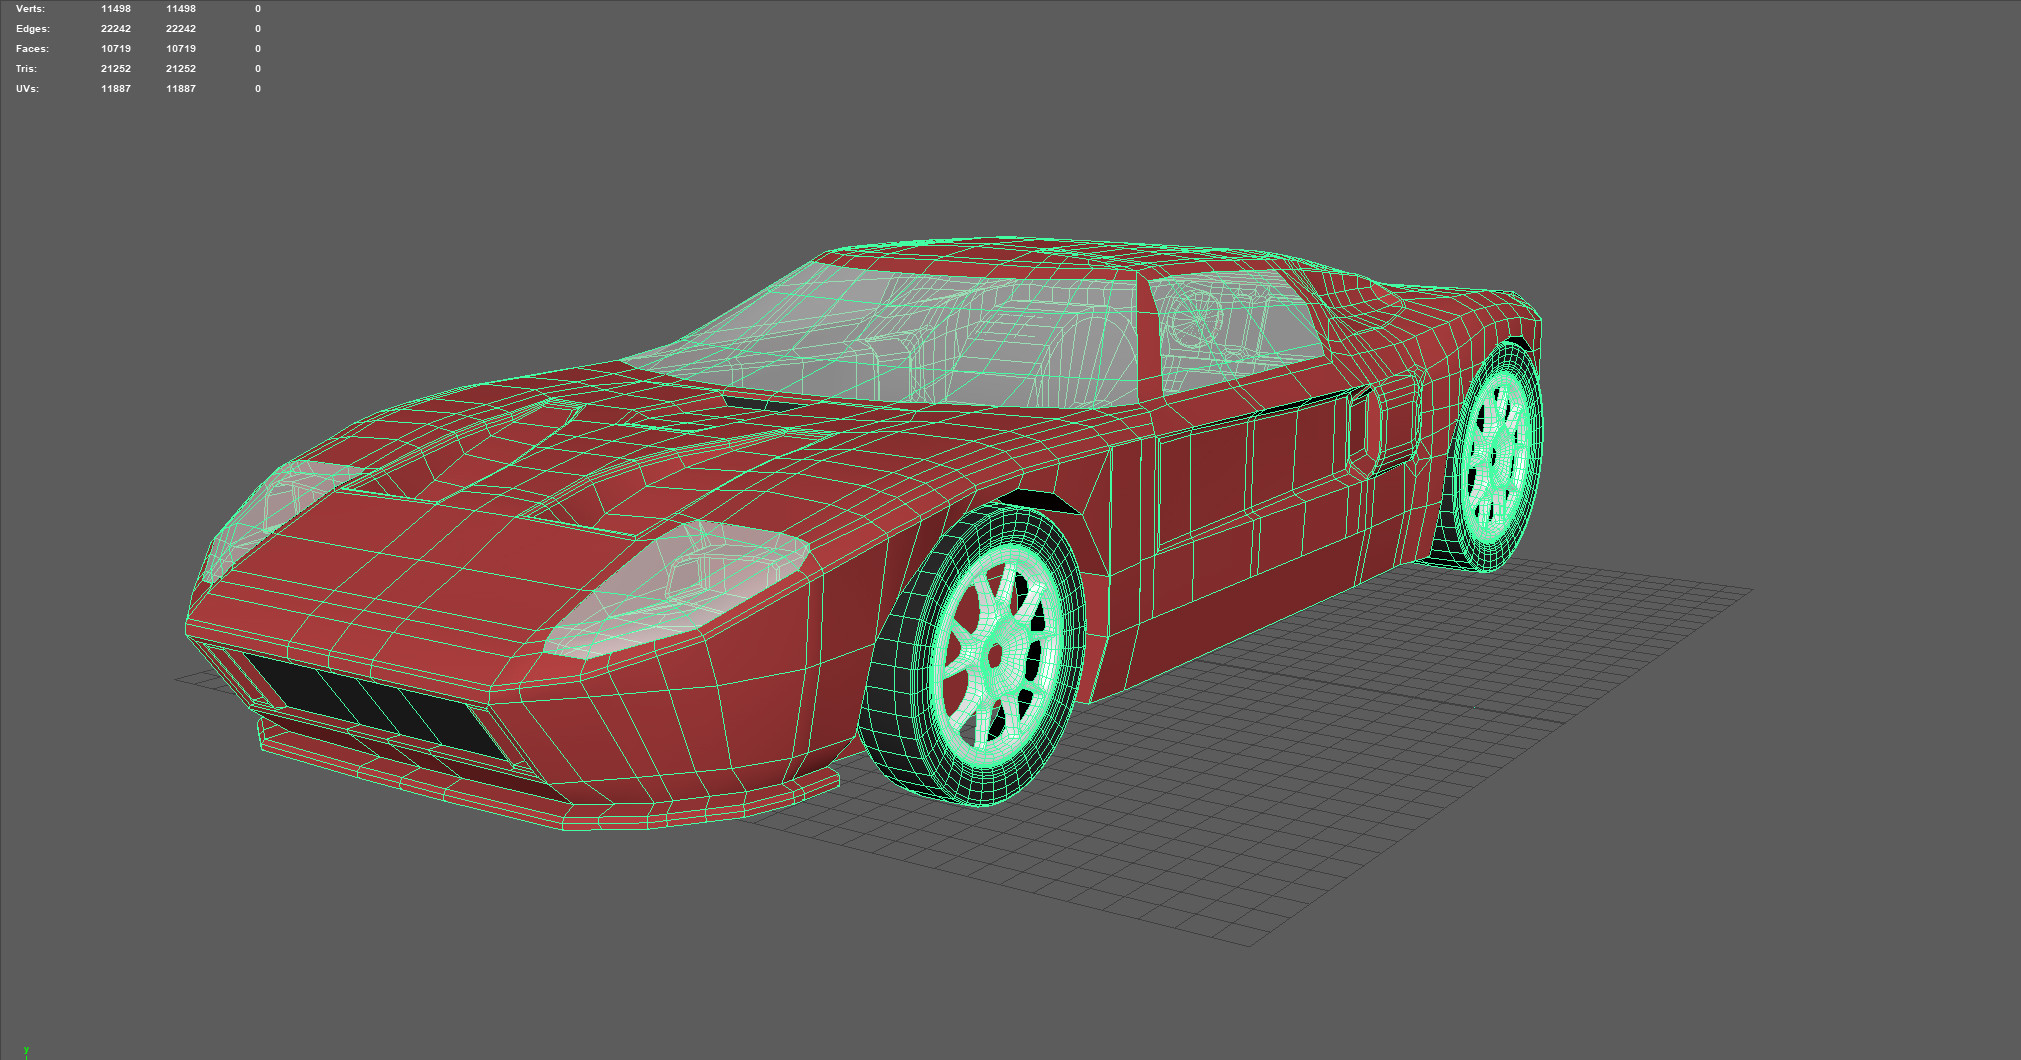 After completing the low poly exterior, I applied some basic materials and exported the low poly model as an fbx.